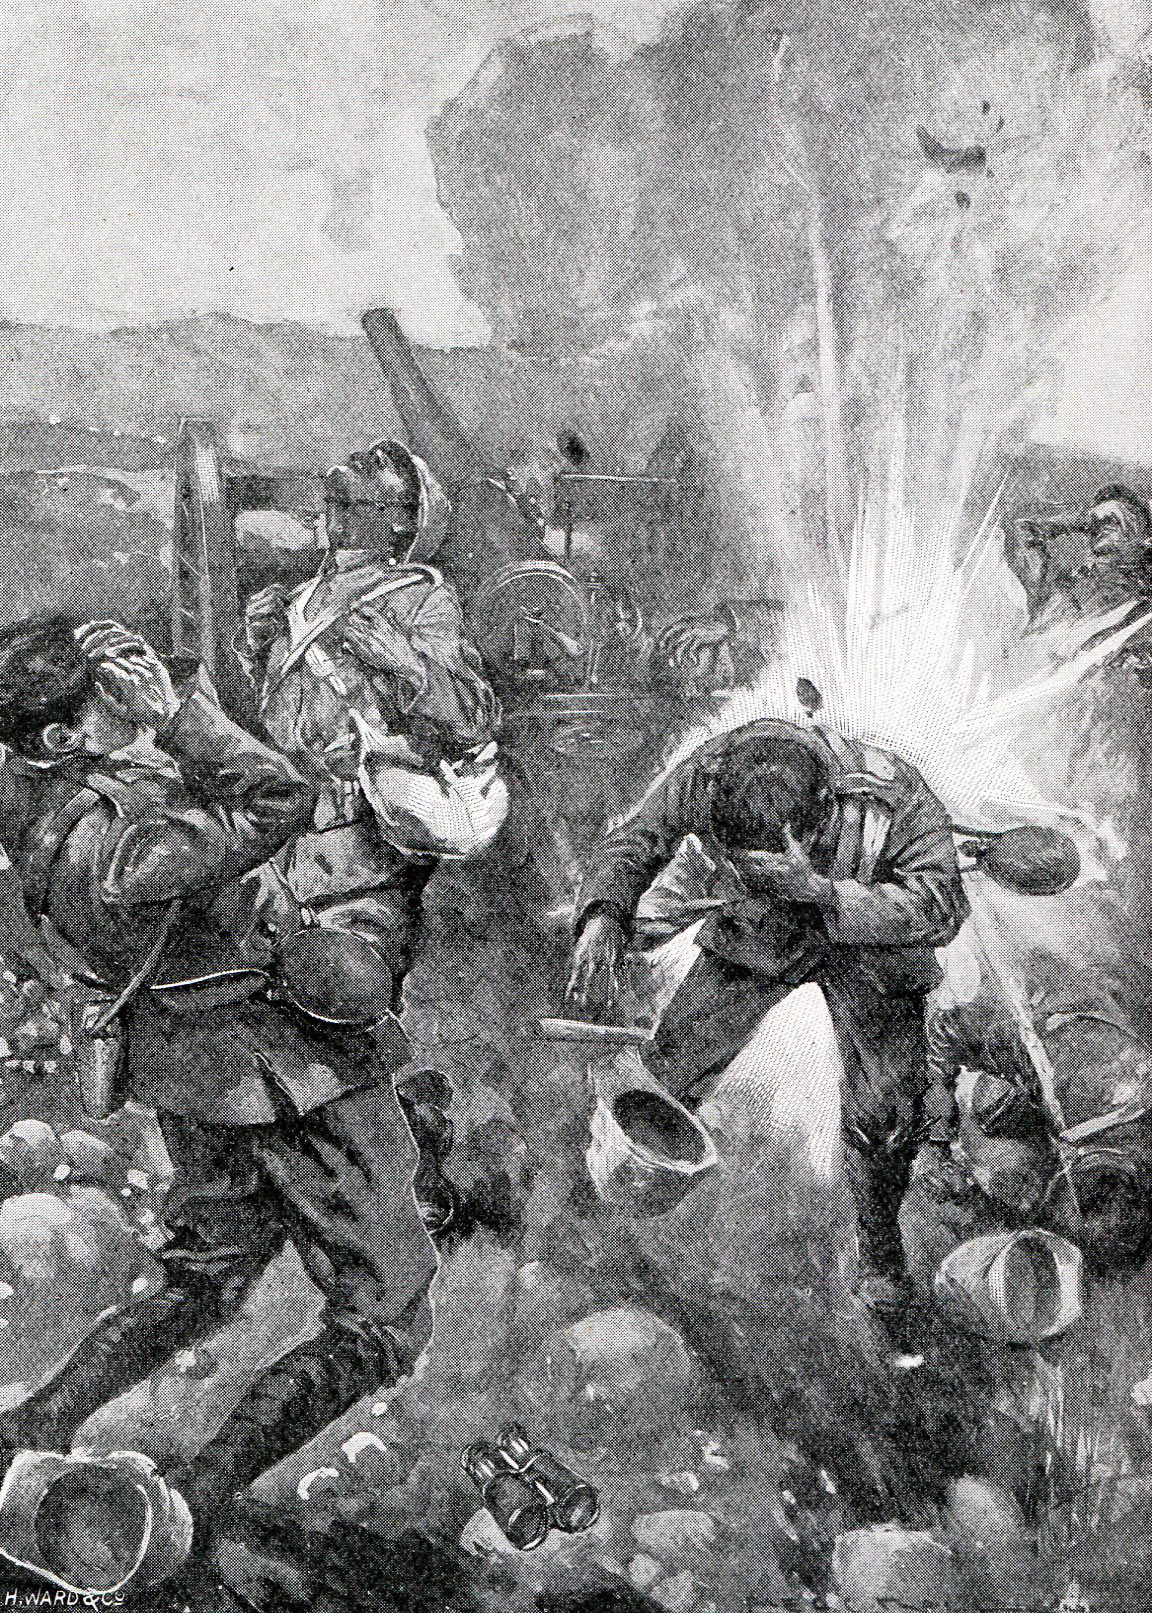 British guns under fire at the Battles of Val Krantz and Pieters 5th to 28th February 1900 in the Great Boer War